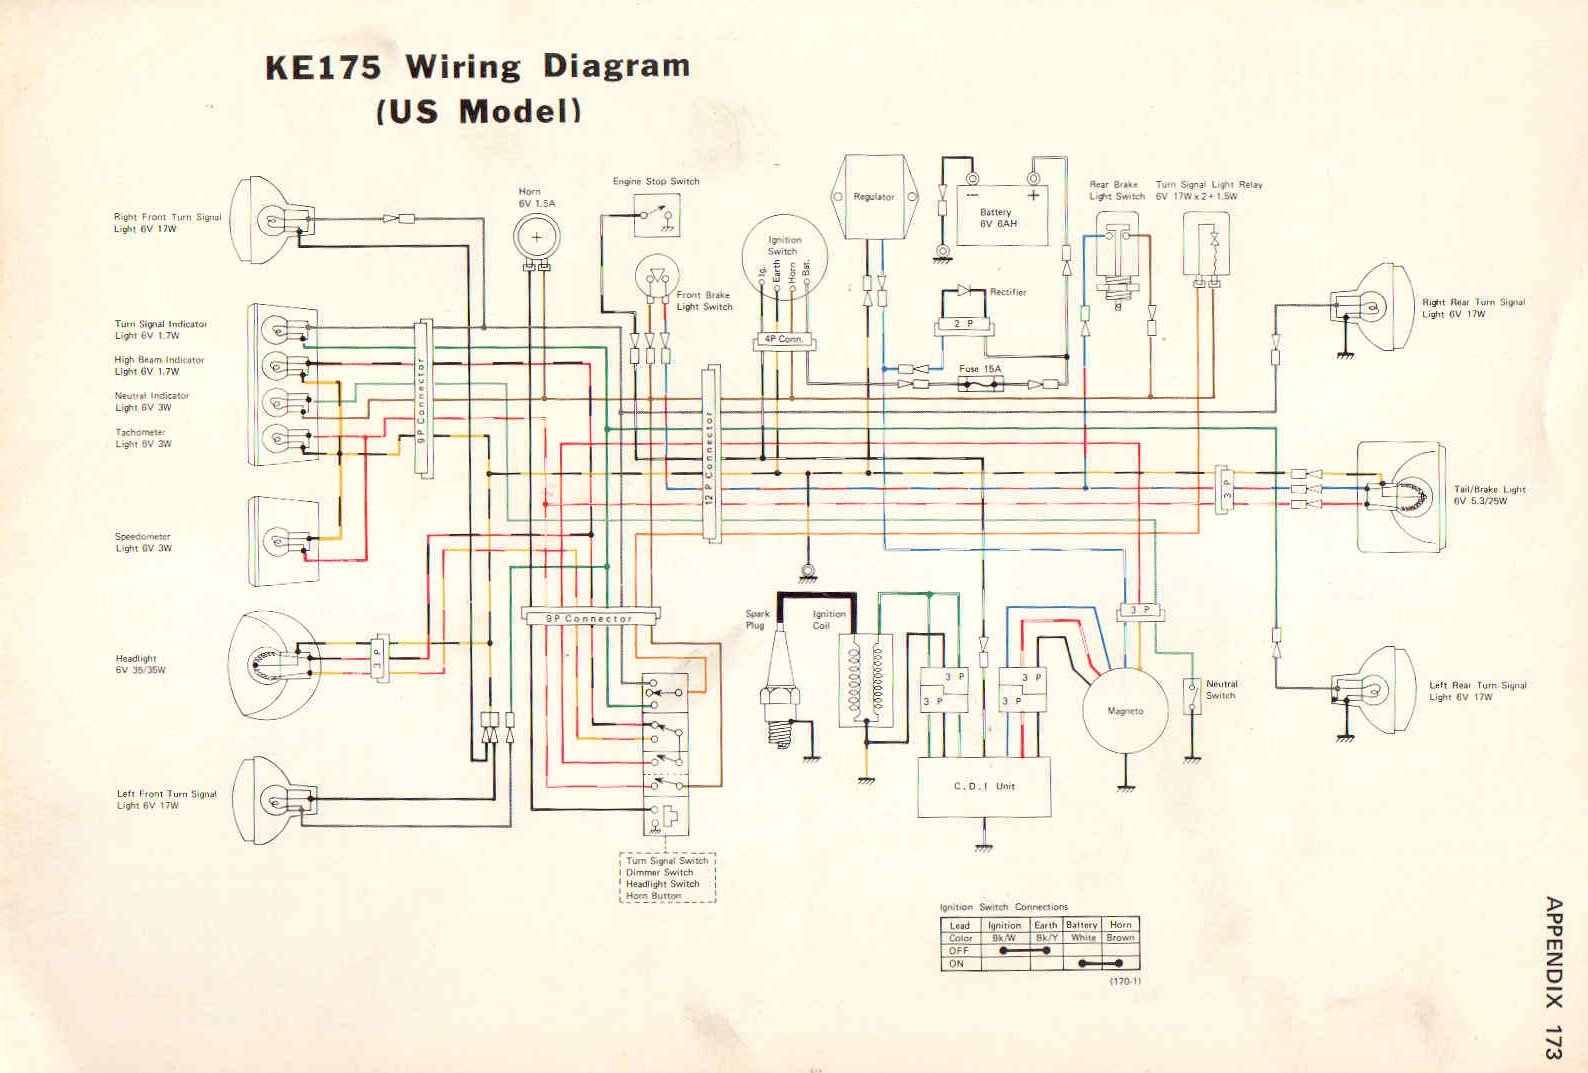 76 77 78 ke175 wiring diagram swarovskicordoba Choice Image